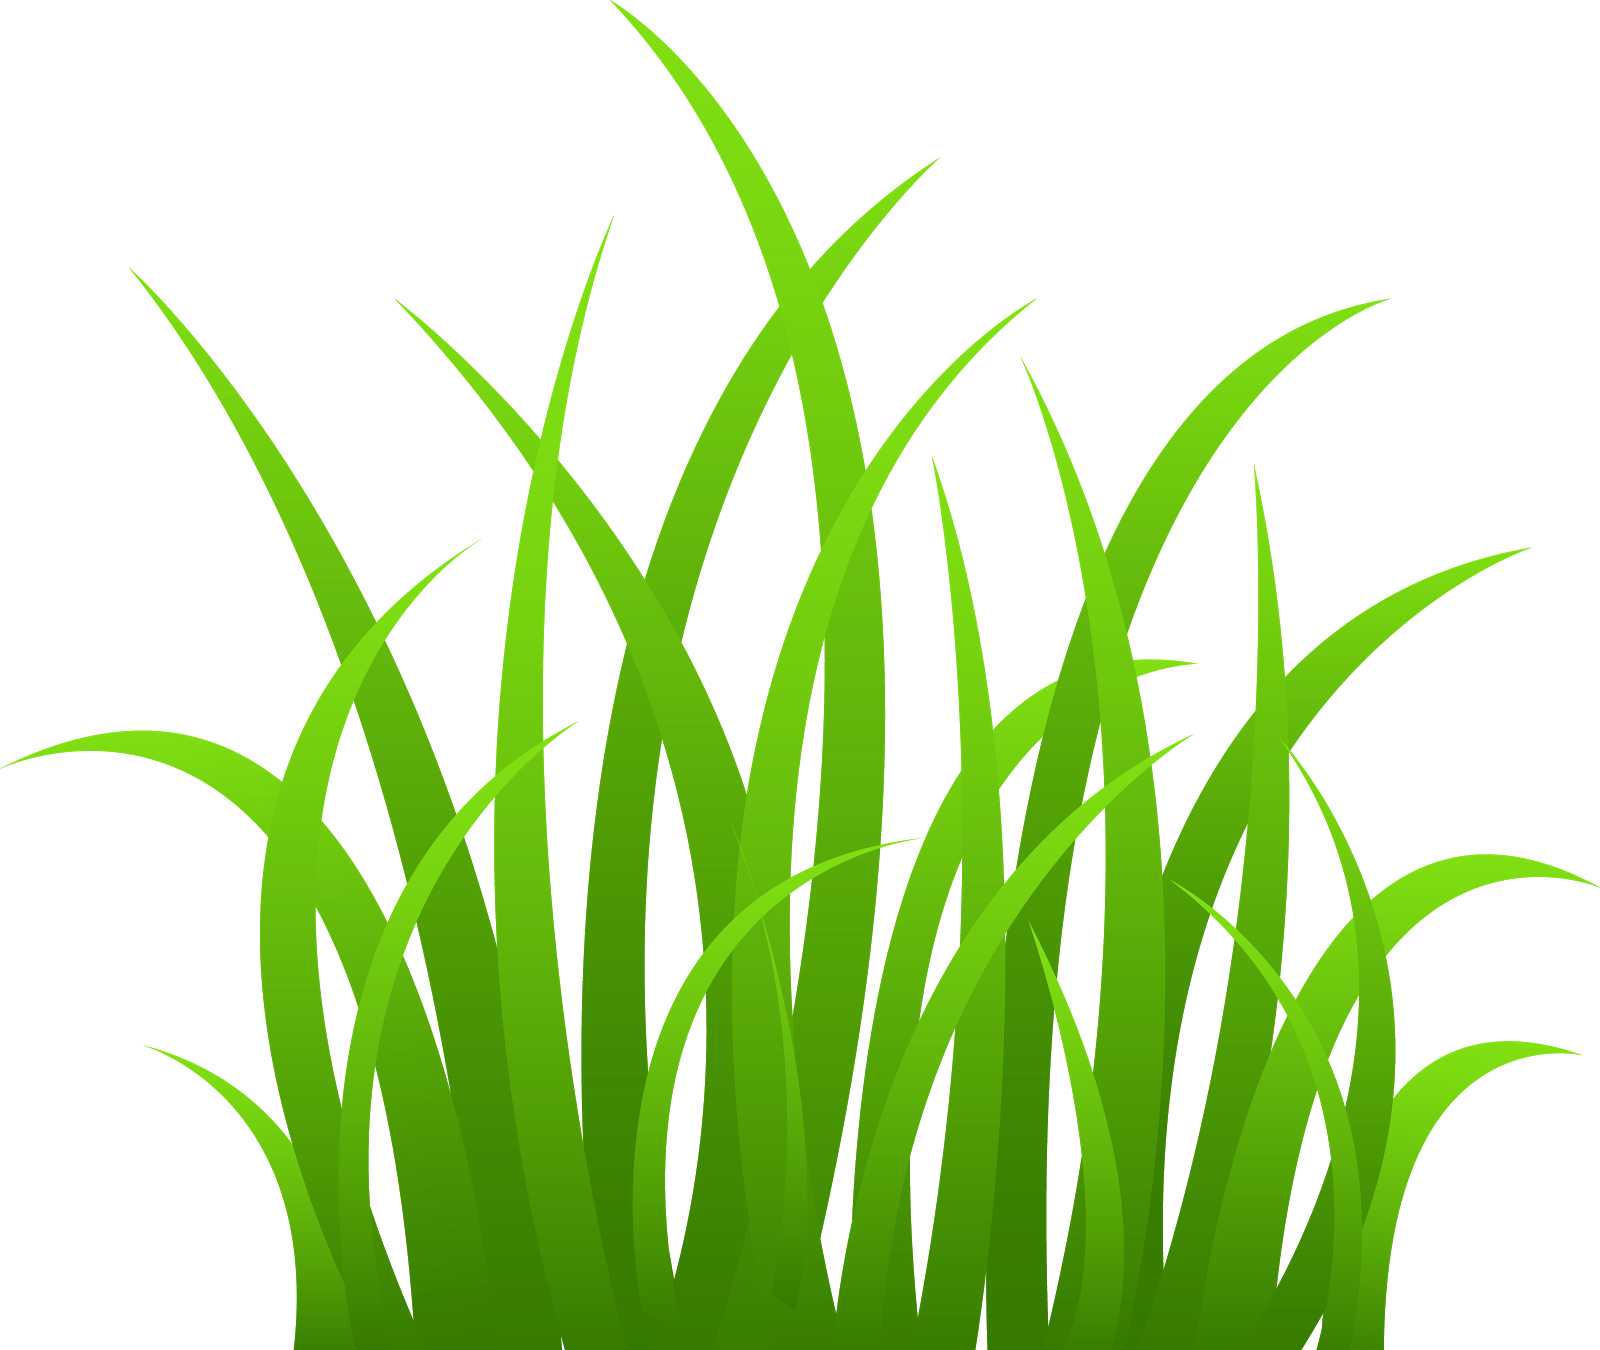 Reed clipart seagrass #6